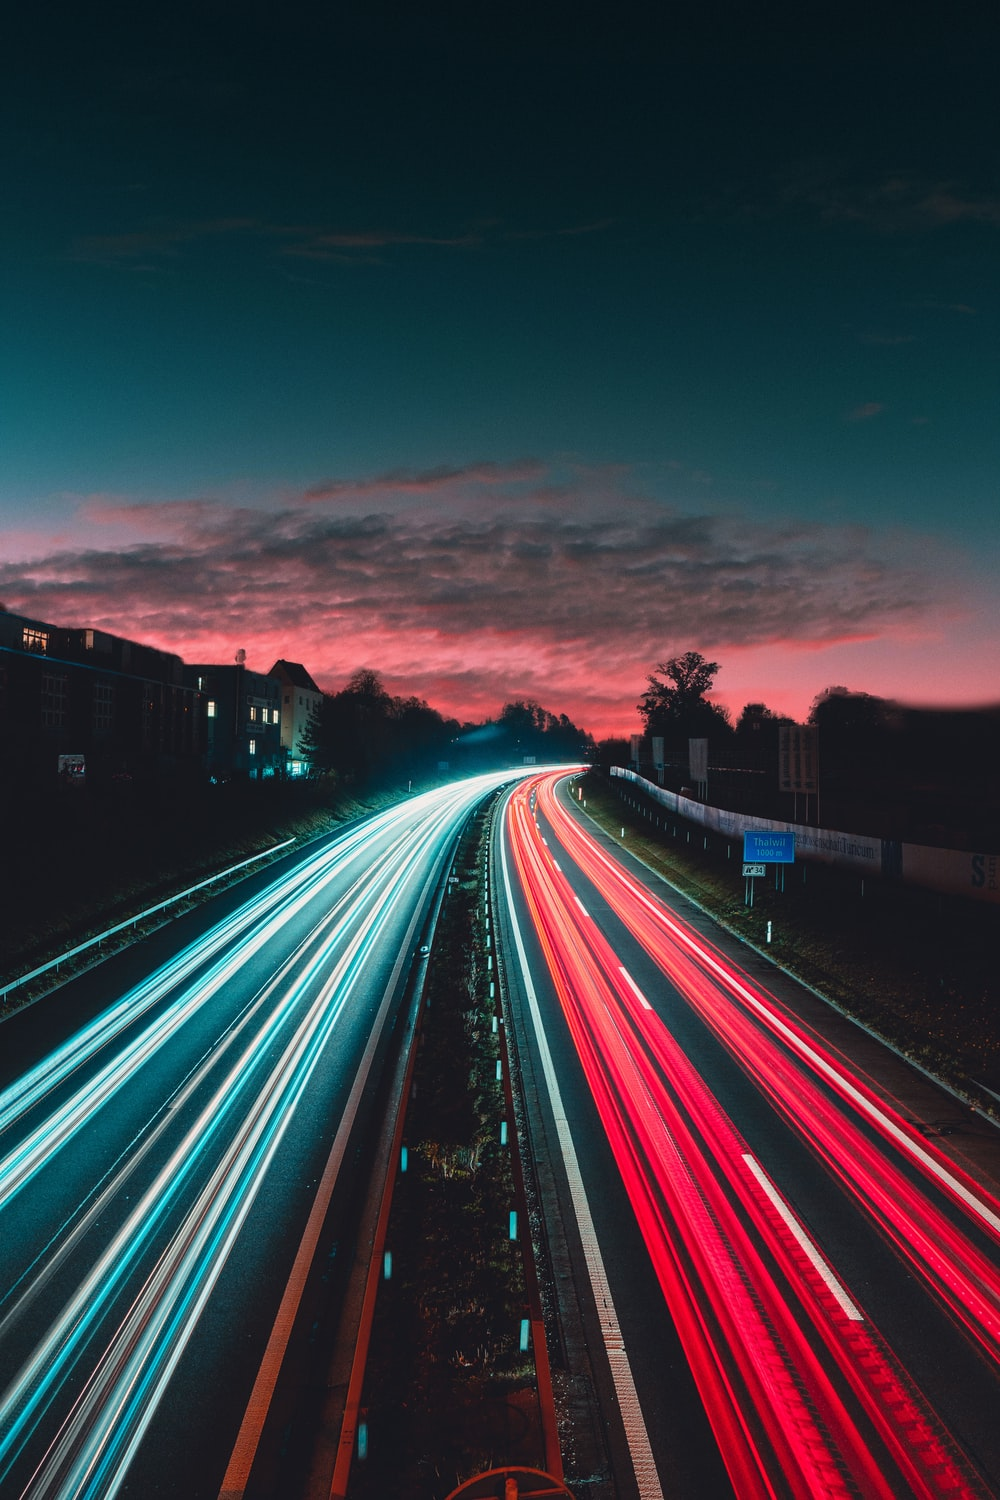 timelapse photography of vehicles at night